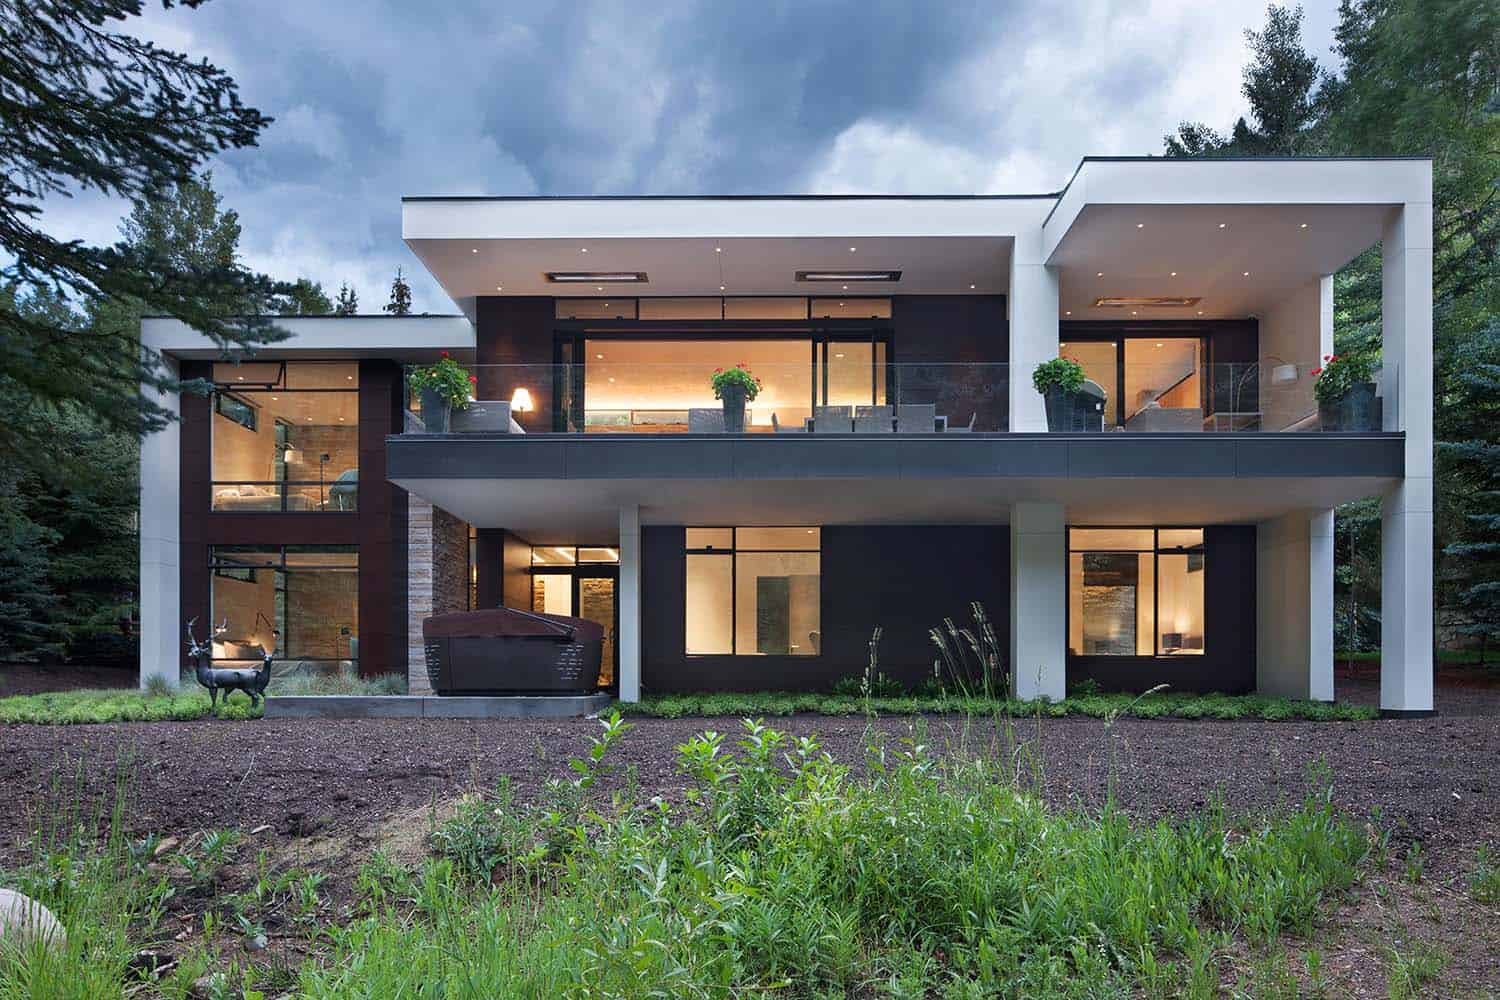 Contemporary Mountain Home-Charles Cunniffe Architects-02-1 Kindesign